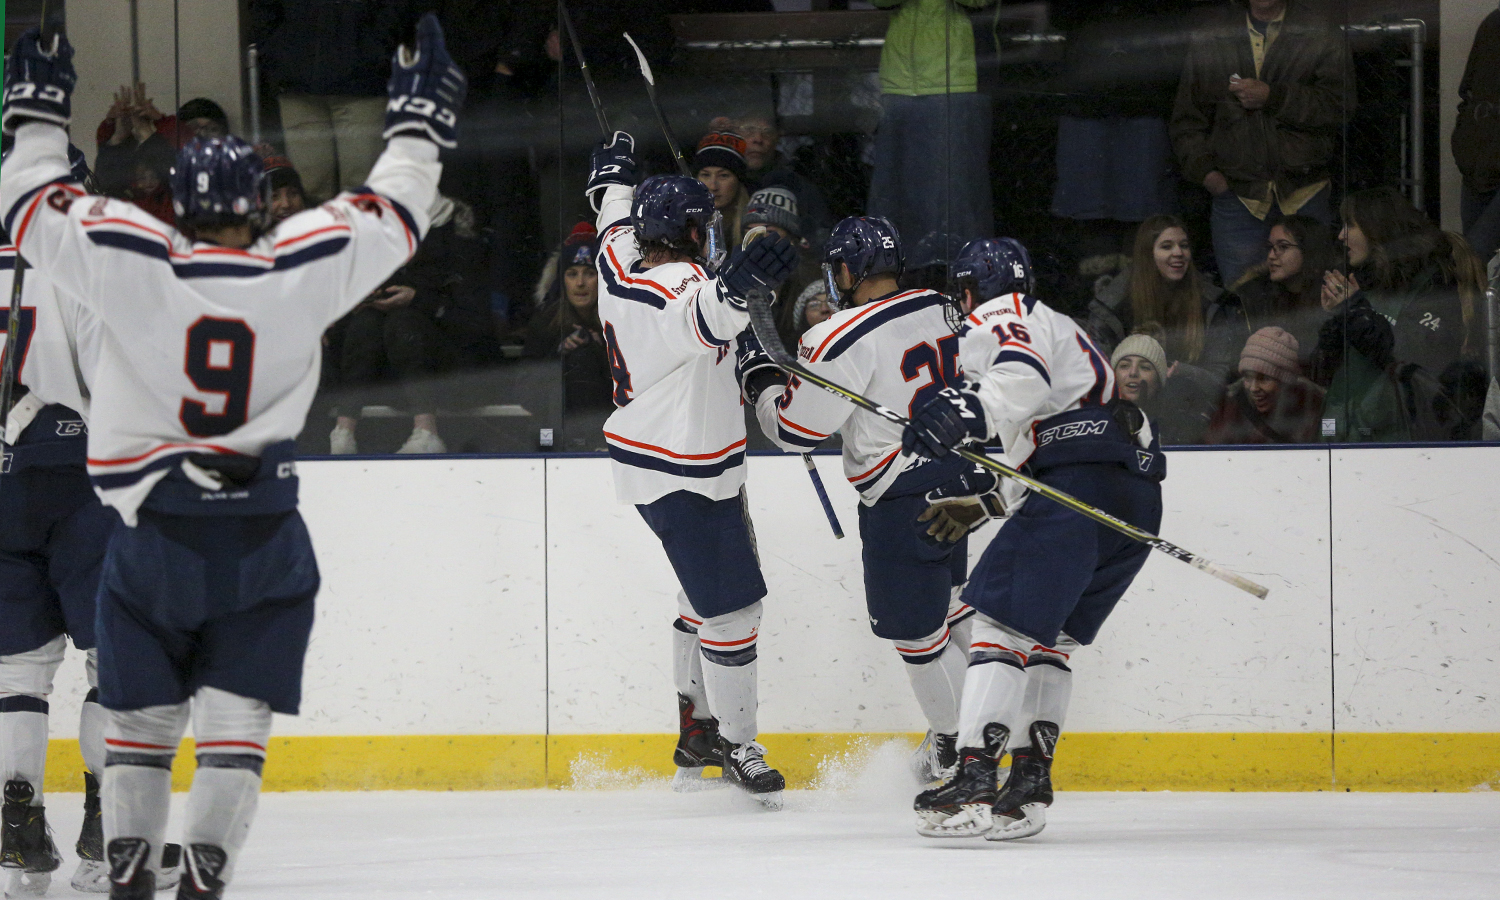 Members of the Hobart Hockey team celebrate after a goal in front of the fans at the Cooler.